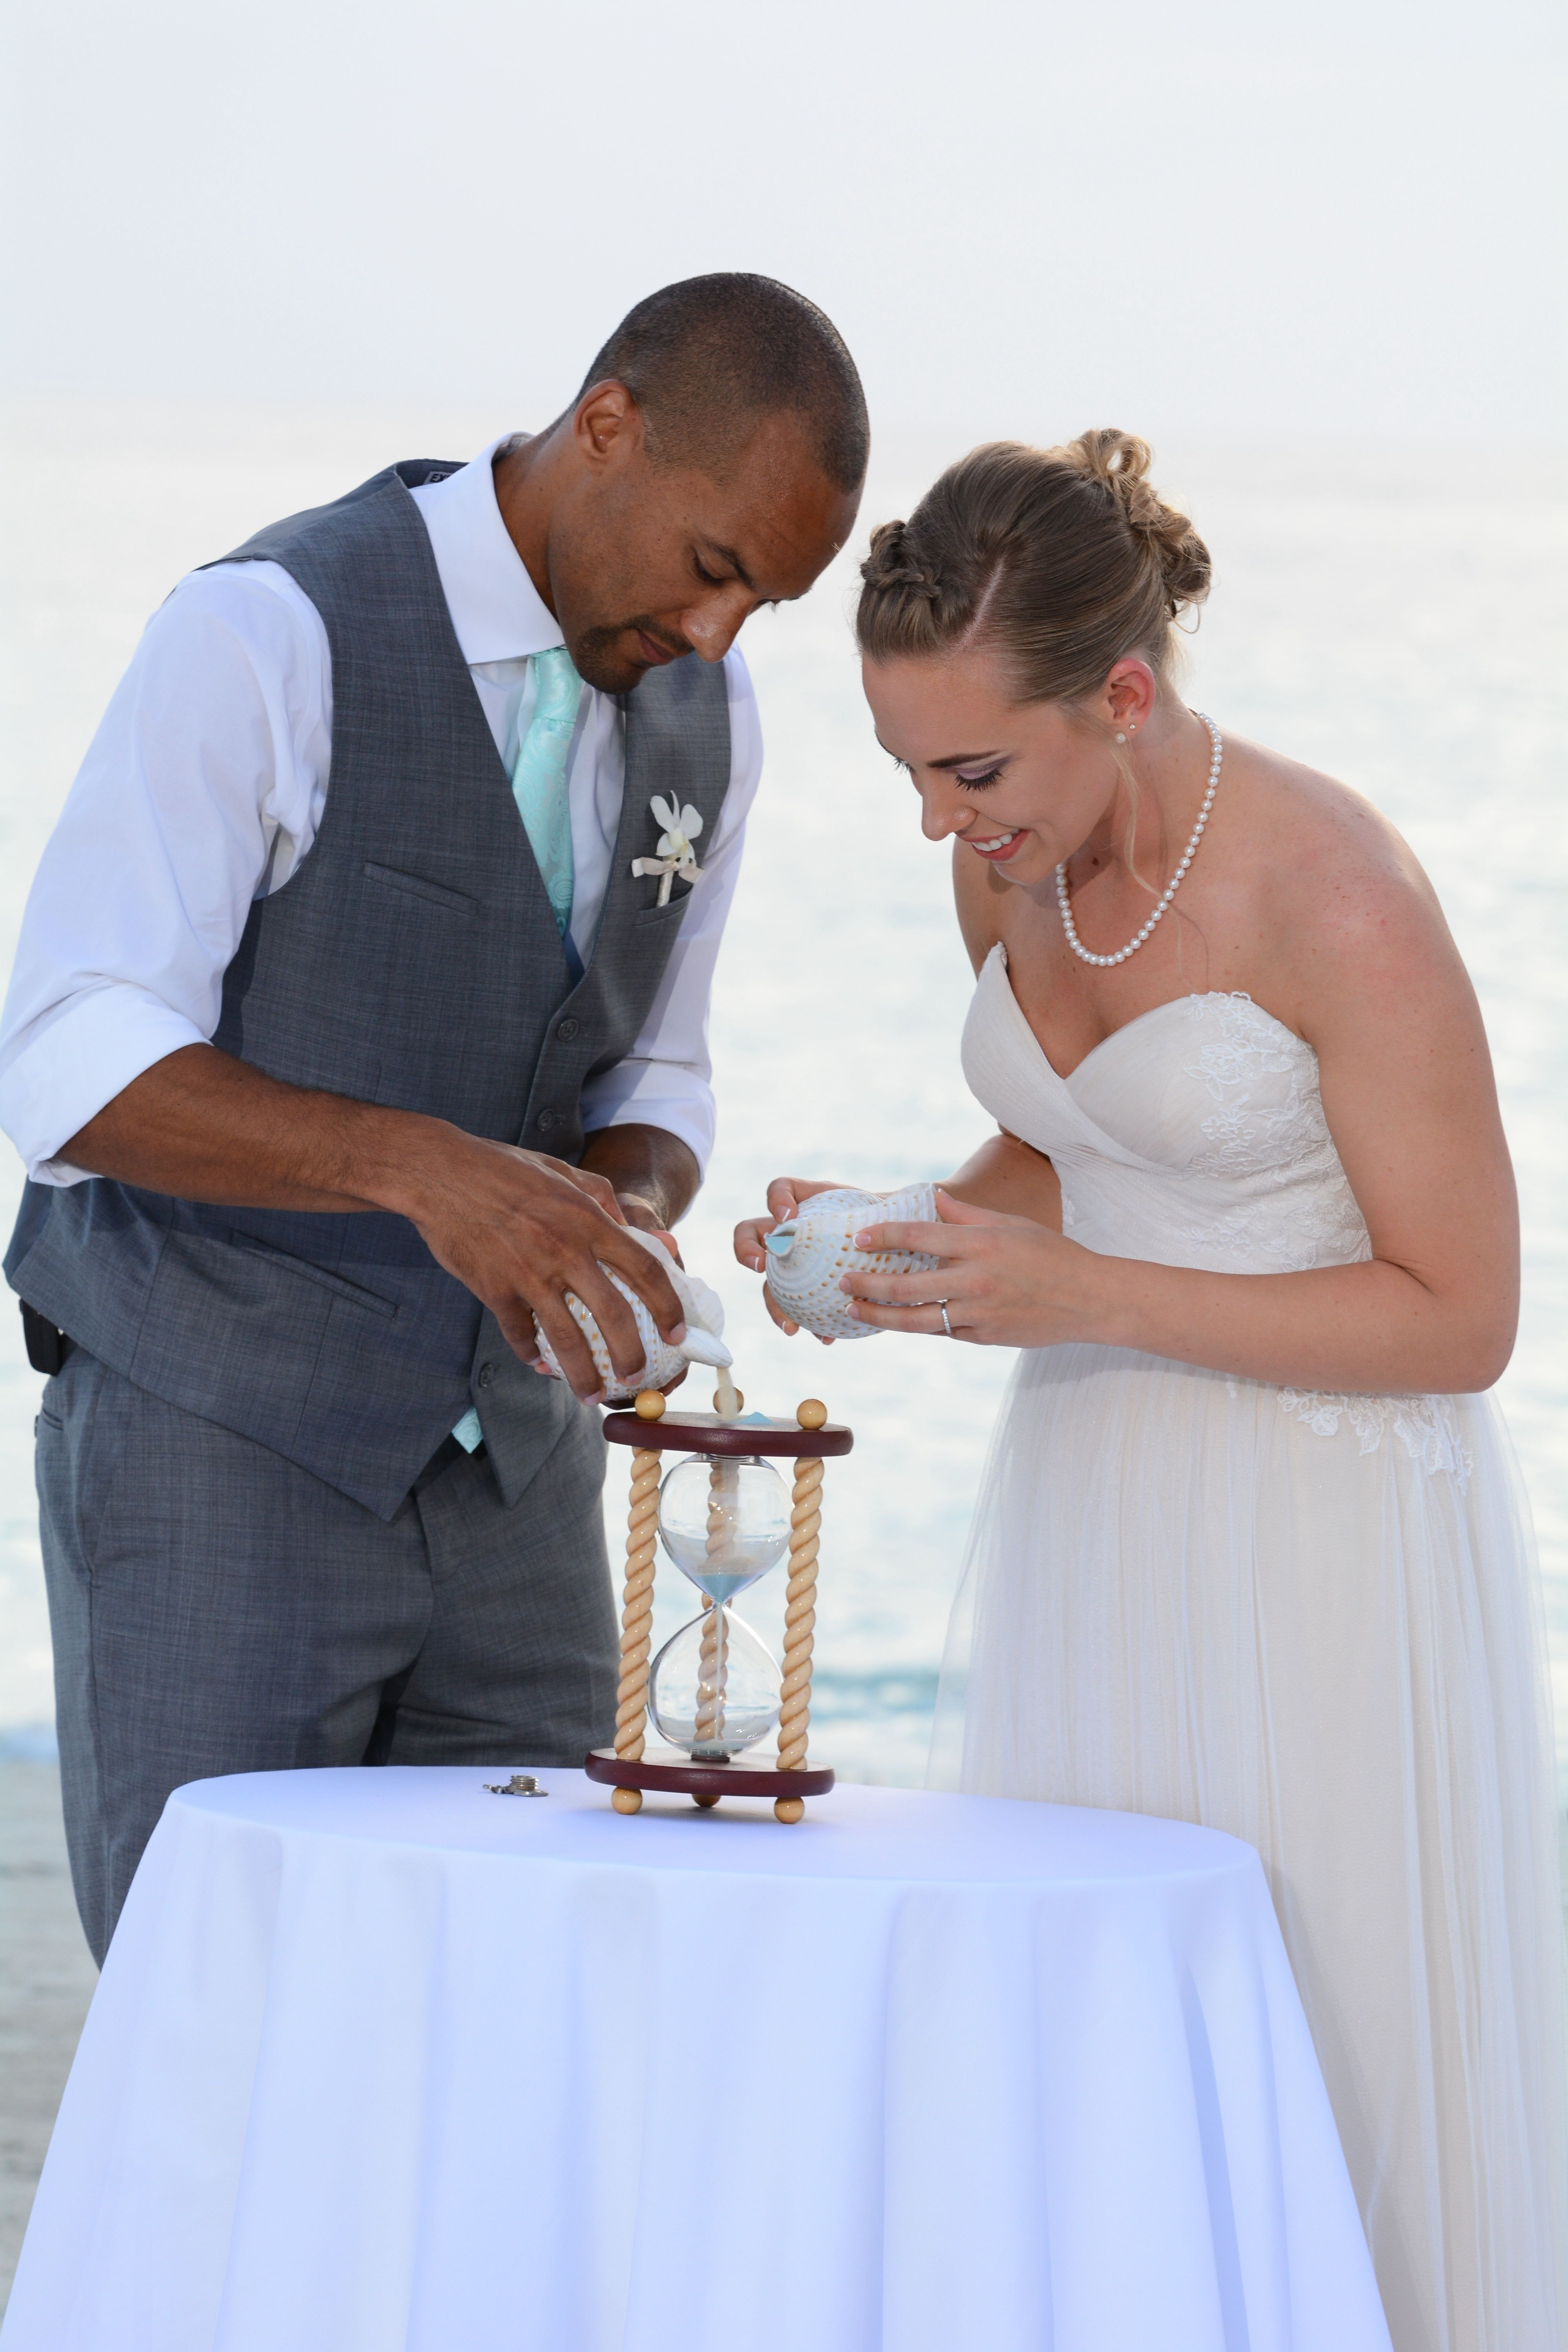 unity sand vase of love this picture of an hourglass sand ceremony wedding within love this picture of an hourglass sand ceremony